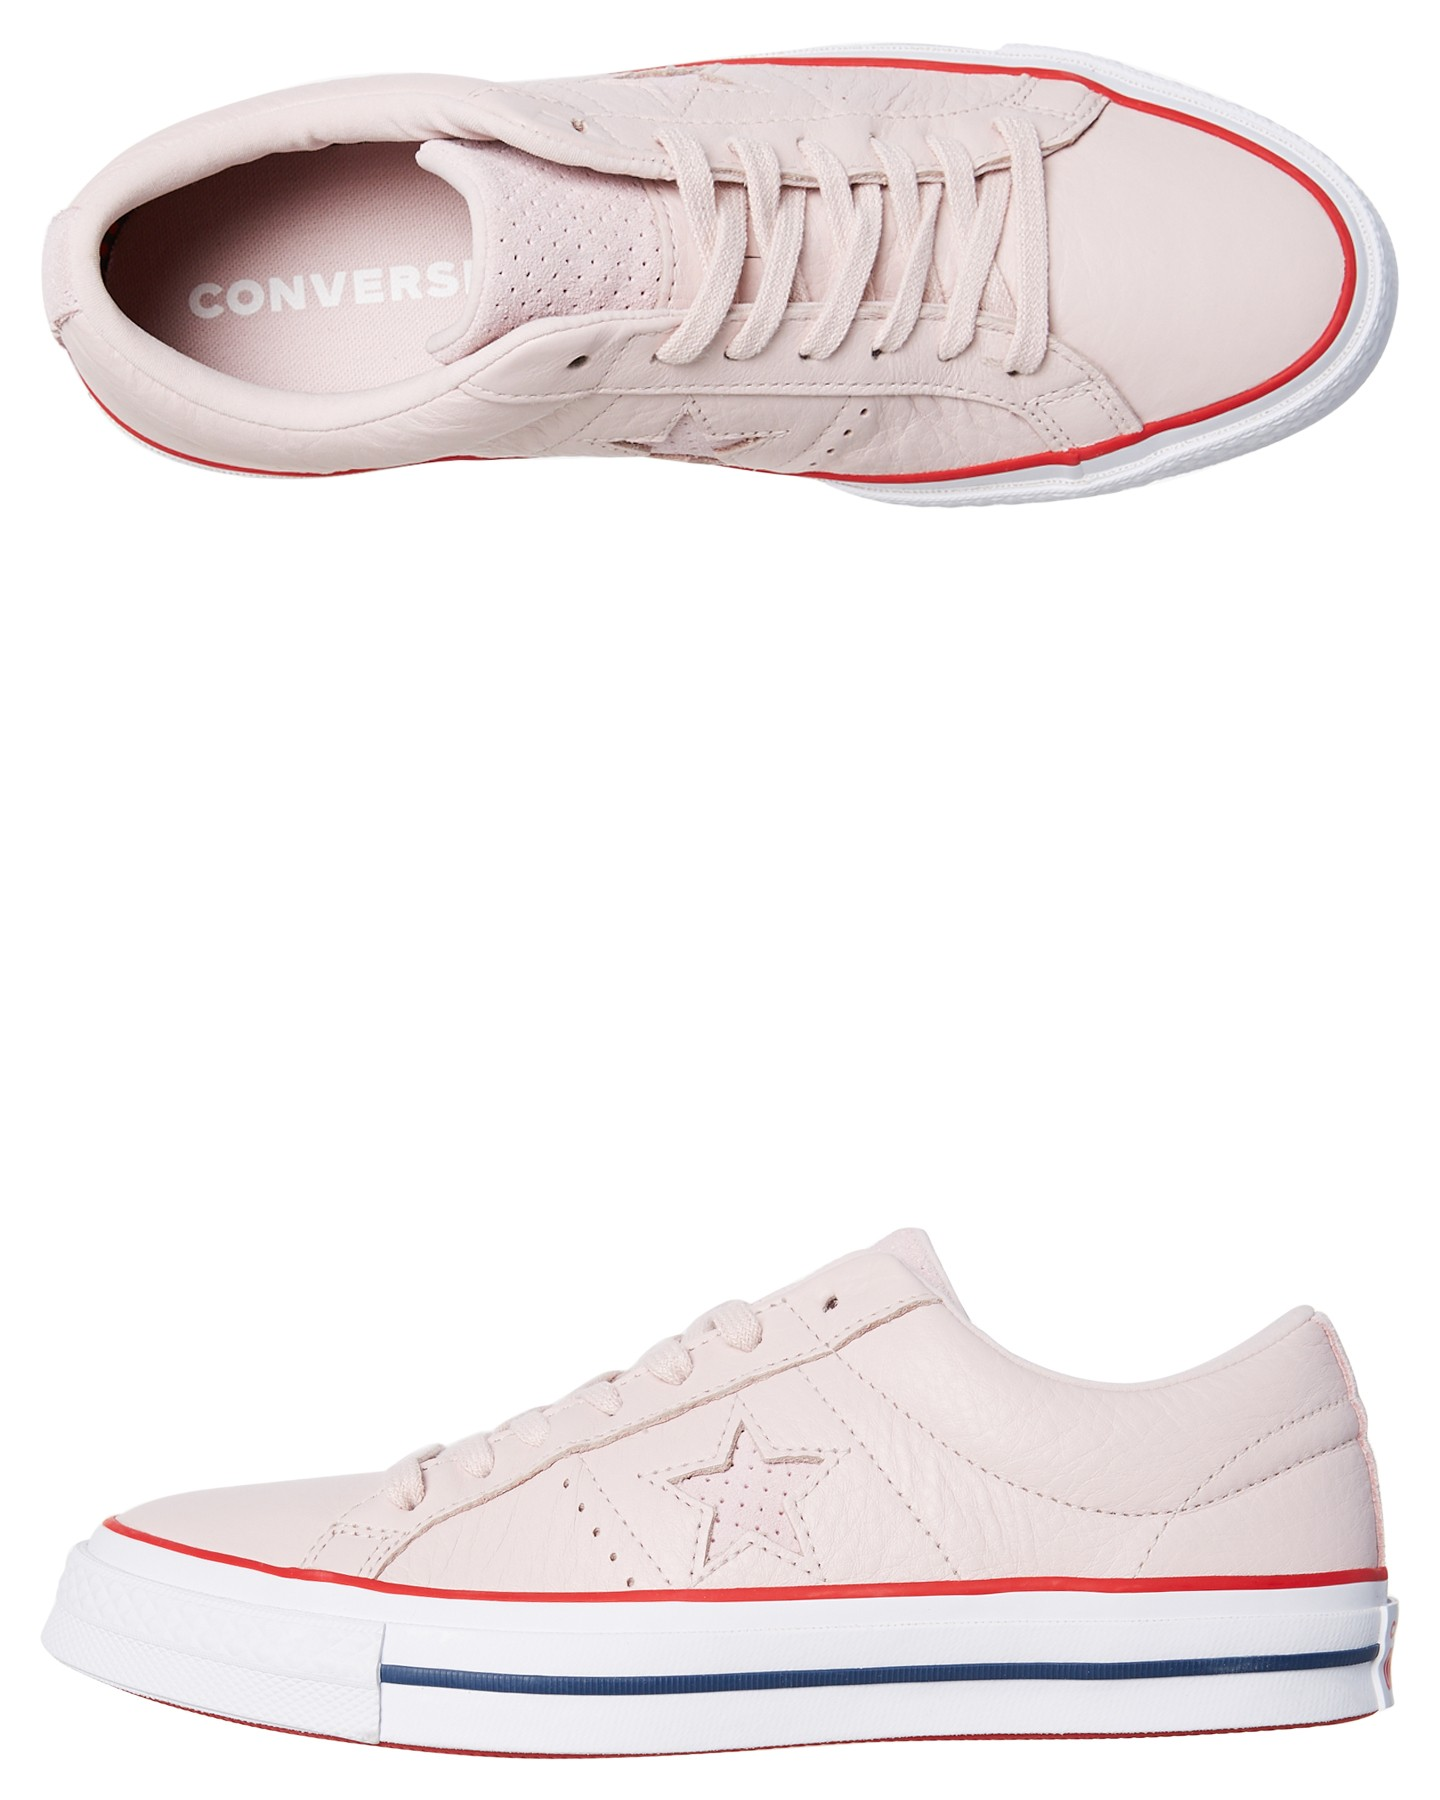 Womens One Star Leather Shoe Barely Rose By CONVERSE